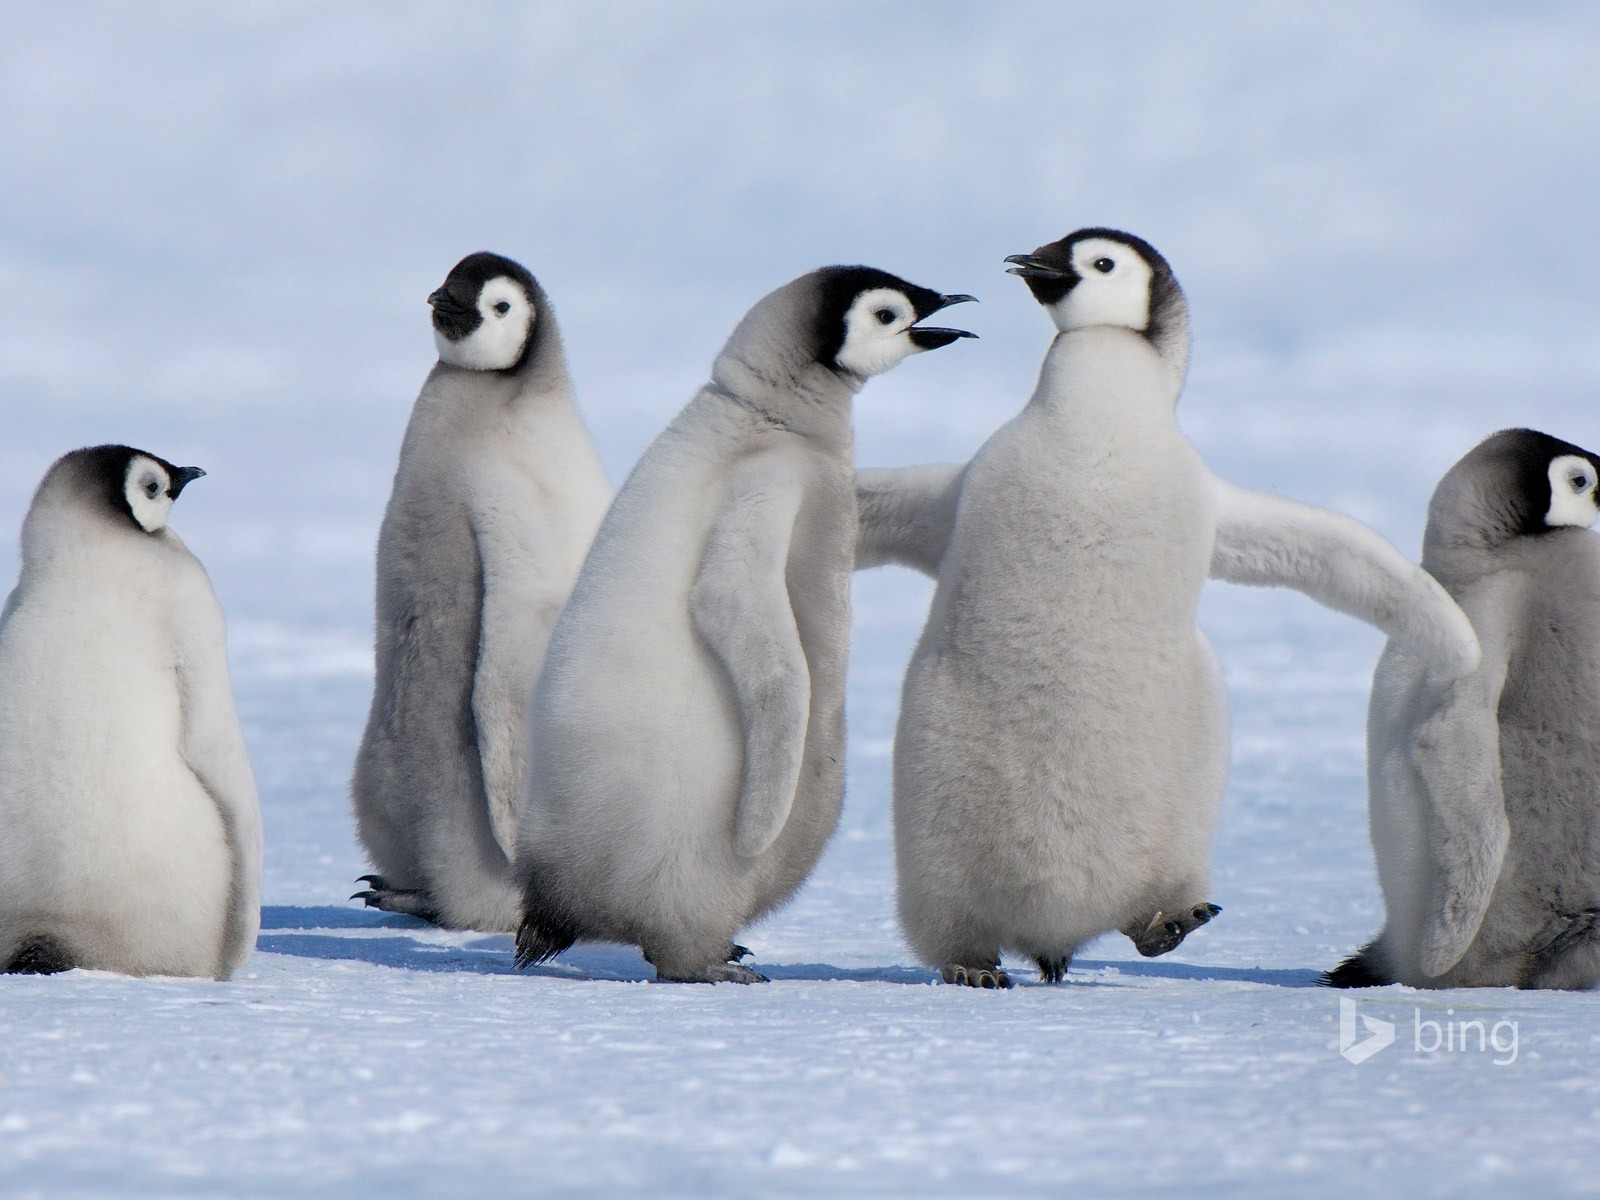 Glacier Penguin Animals 2015 Bing Theme Wallpaper Preview 10wallpaper Com